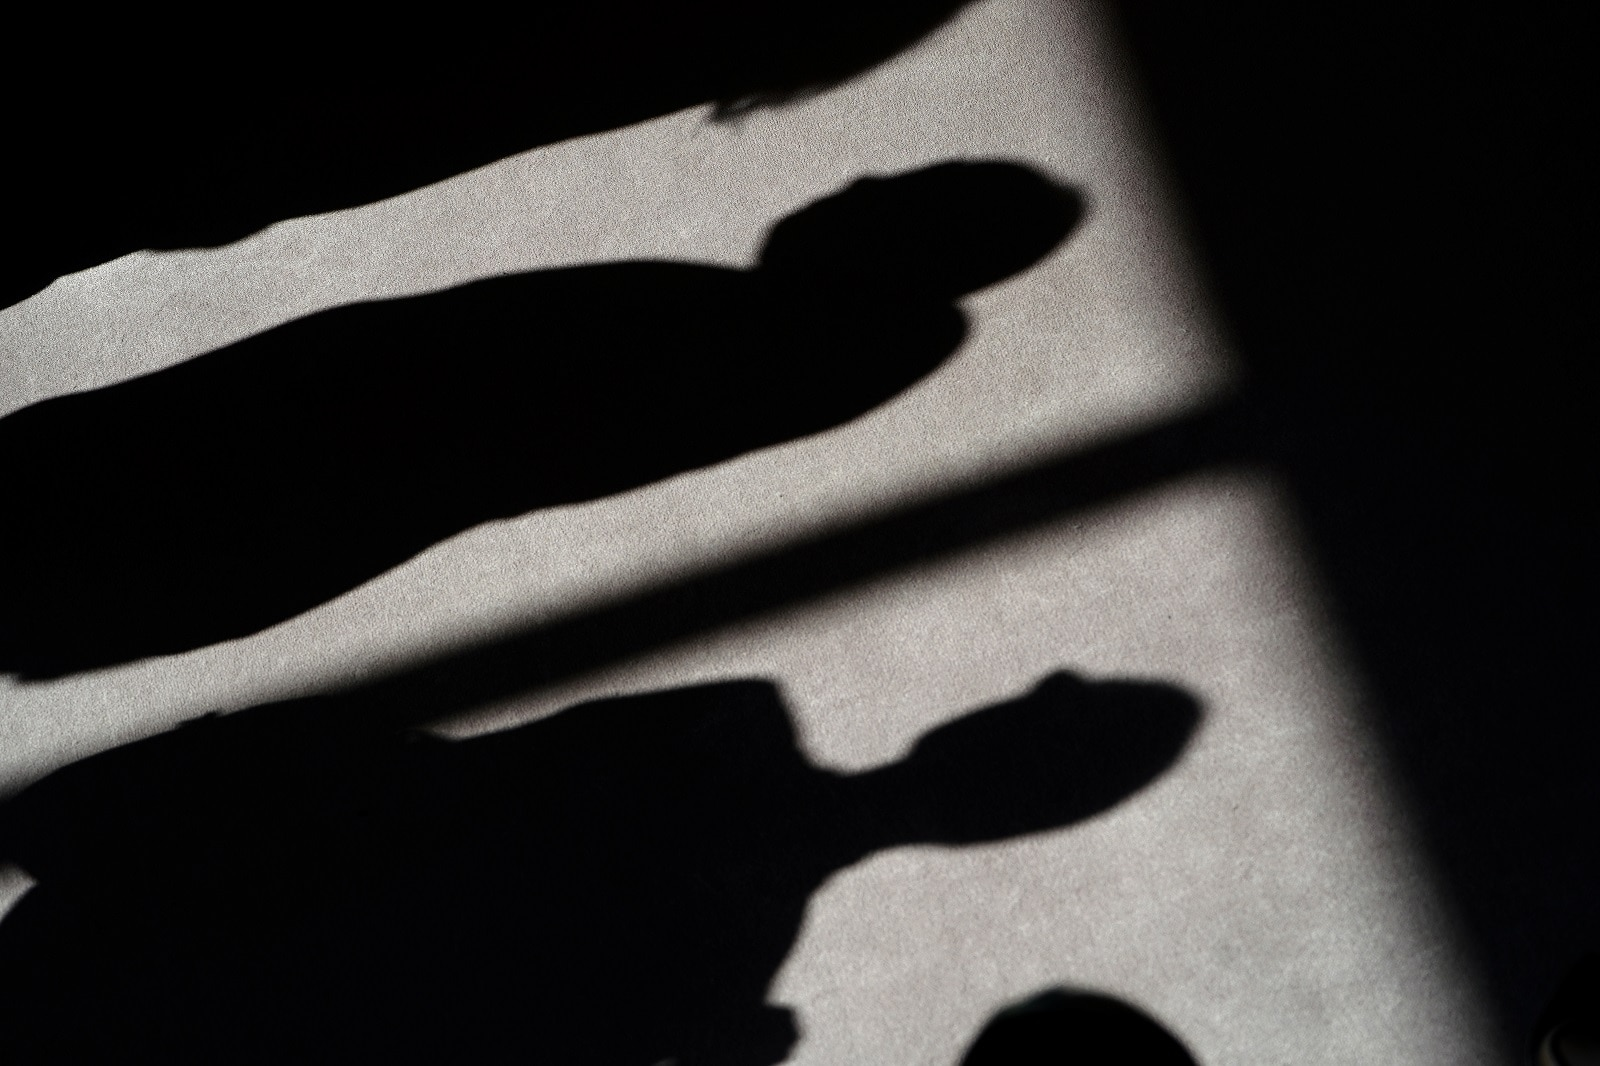 Shadows of people are cast on the carpet of the United Nations Security Council before a meeting about sexual violence in conflict in New York, New York, US, April 23, 2019. REUTERS/Carlo Allegri